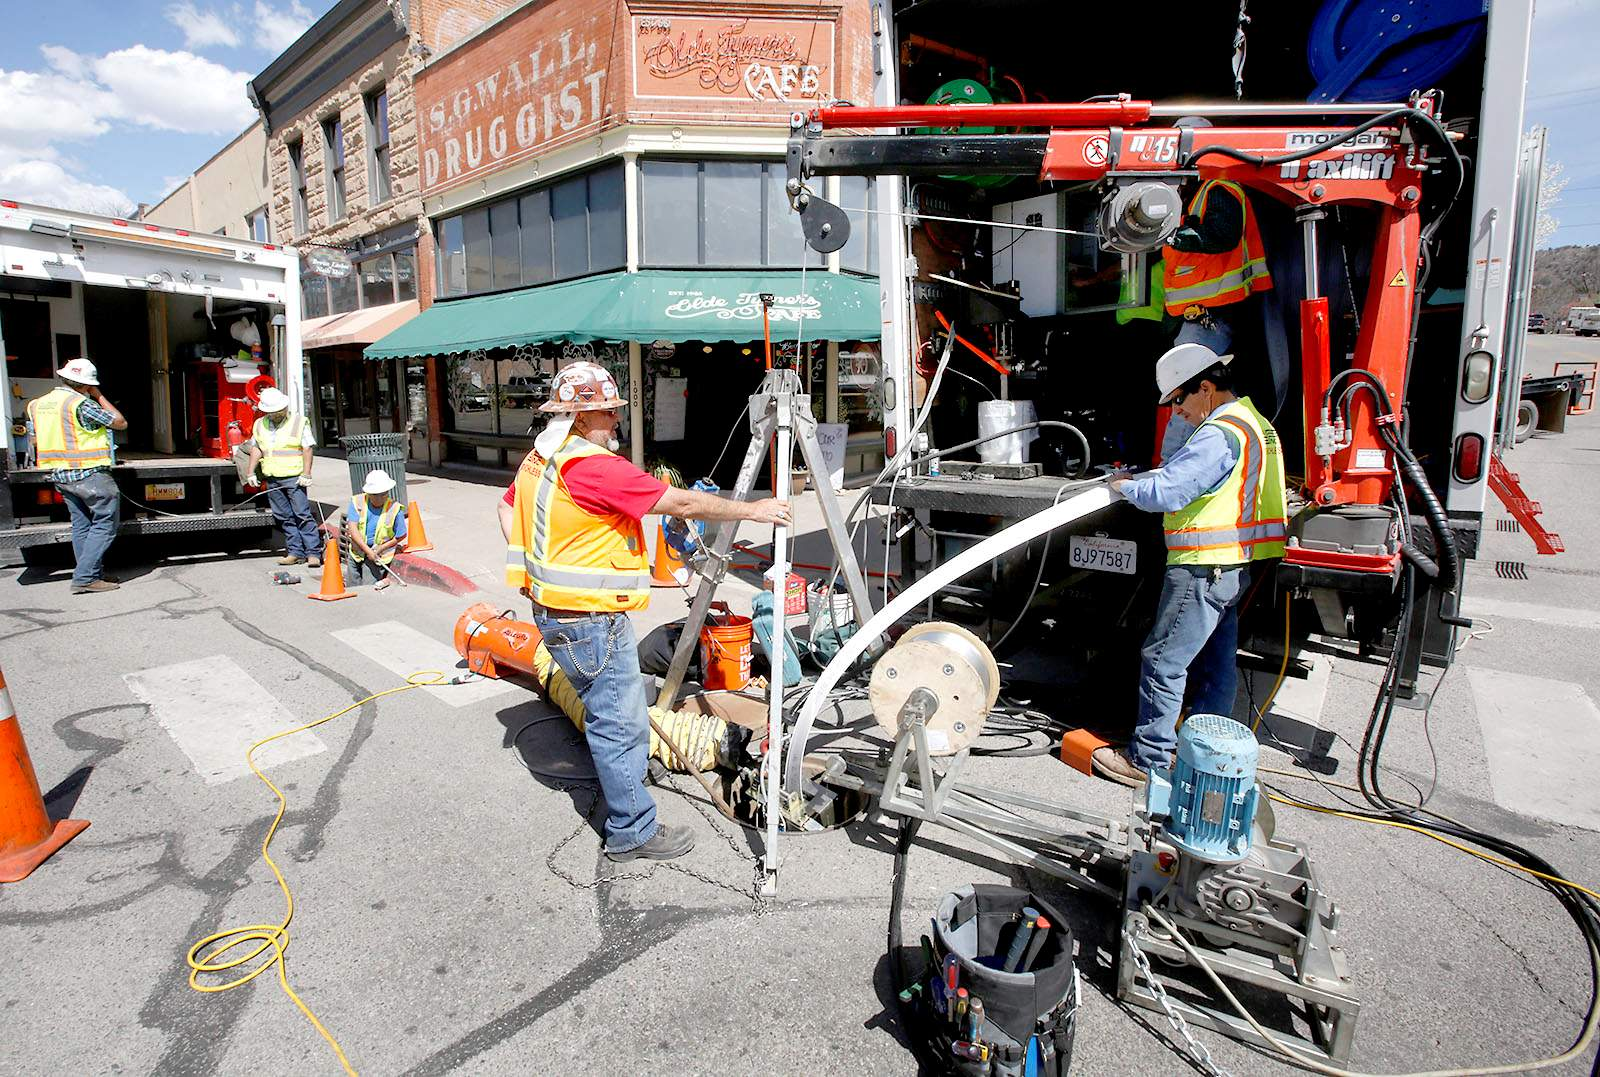 Crews with AUI Inc. install a liner made of thick PVC material inside a storm sewer pipe Wednesday on Main Avenue in downtown Durango. & Whatu0027s the heavy construction on Main Avenue? Itu0027s pipe lining